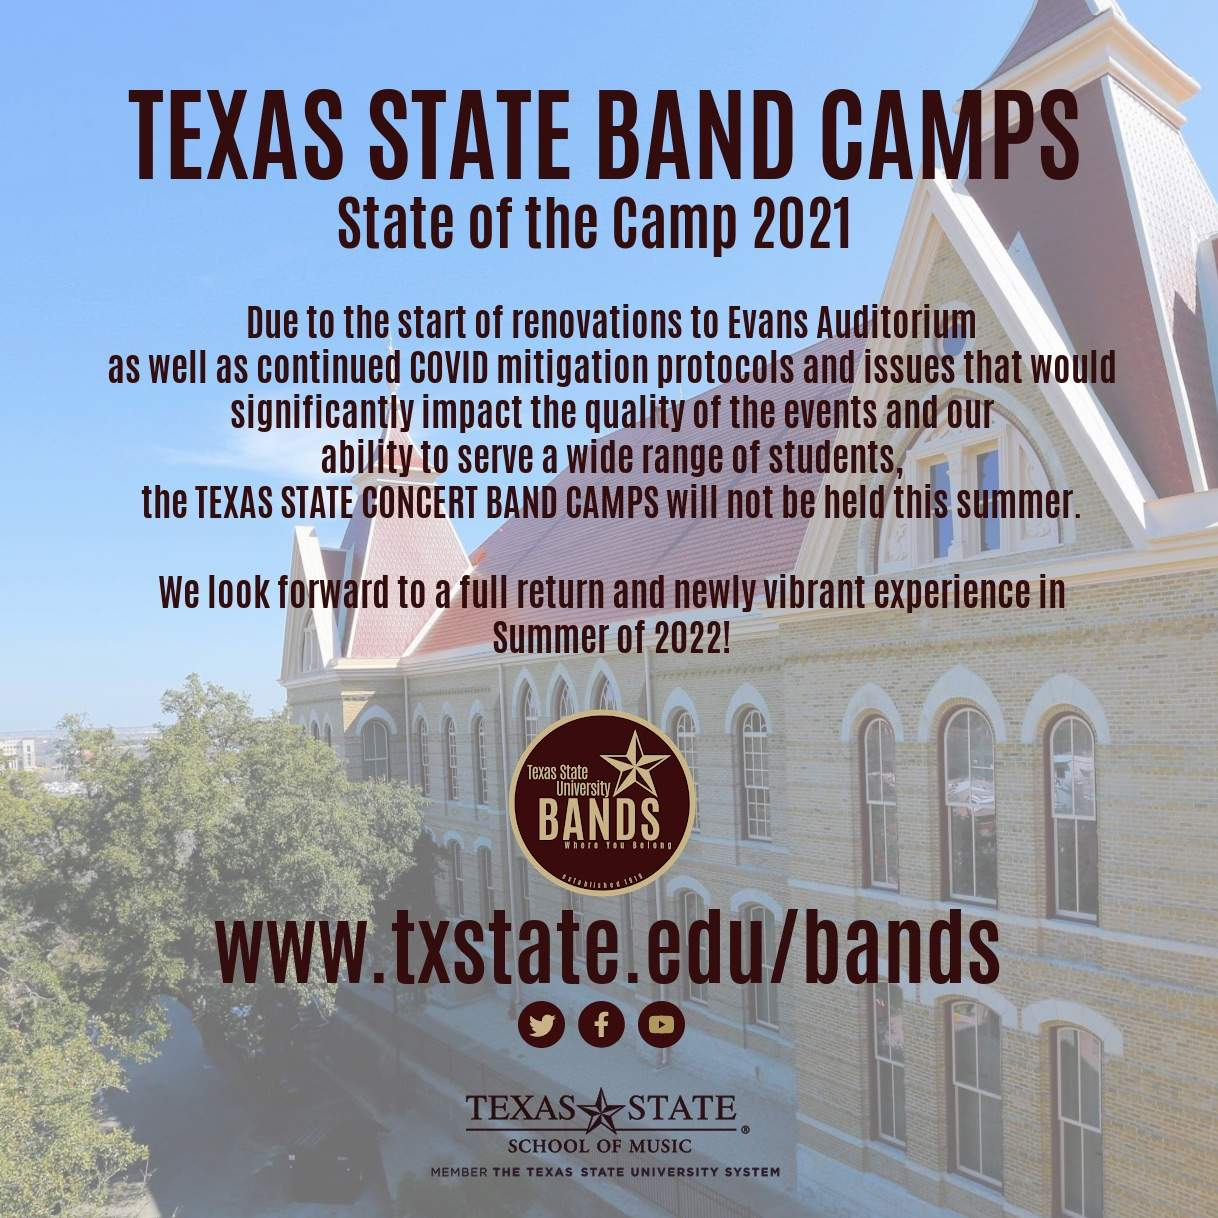 2021 Band Camp Notice